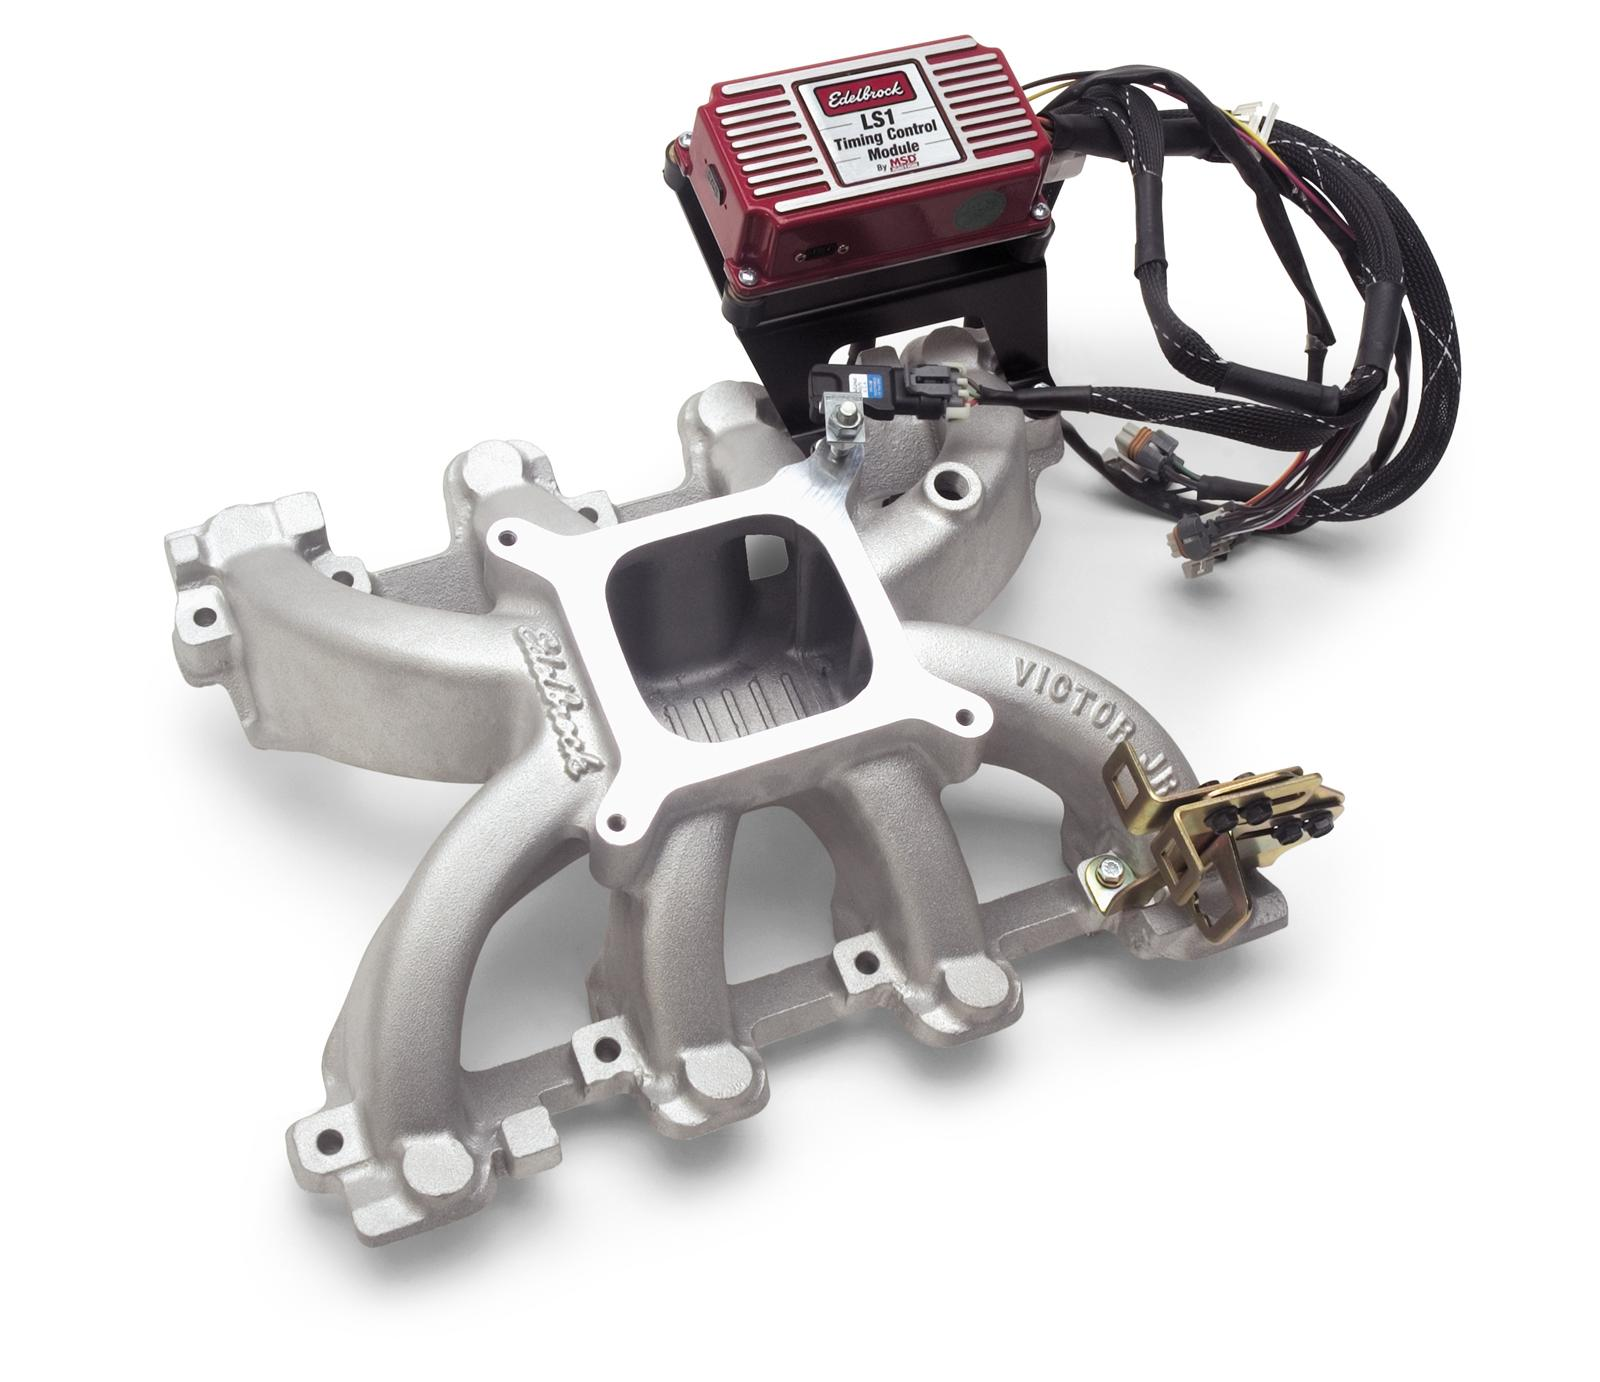 hight resolution of edelbrock victor jr ls1 carbureted intake manifold packages 2908 free shipping on orders over 99 at summit racing